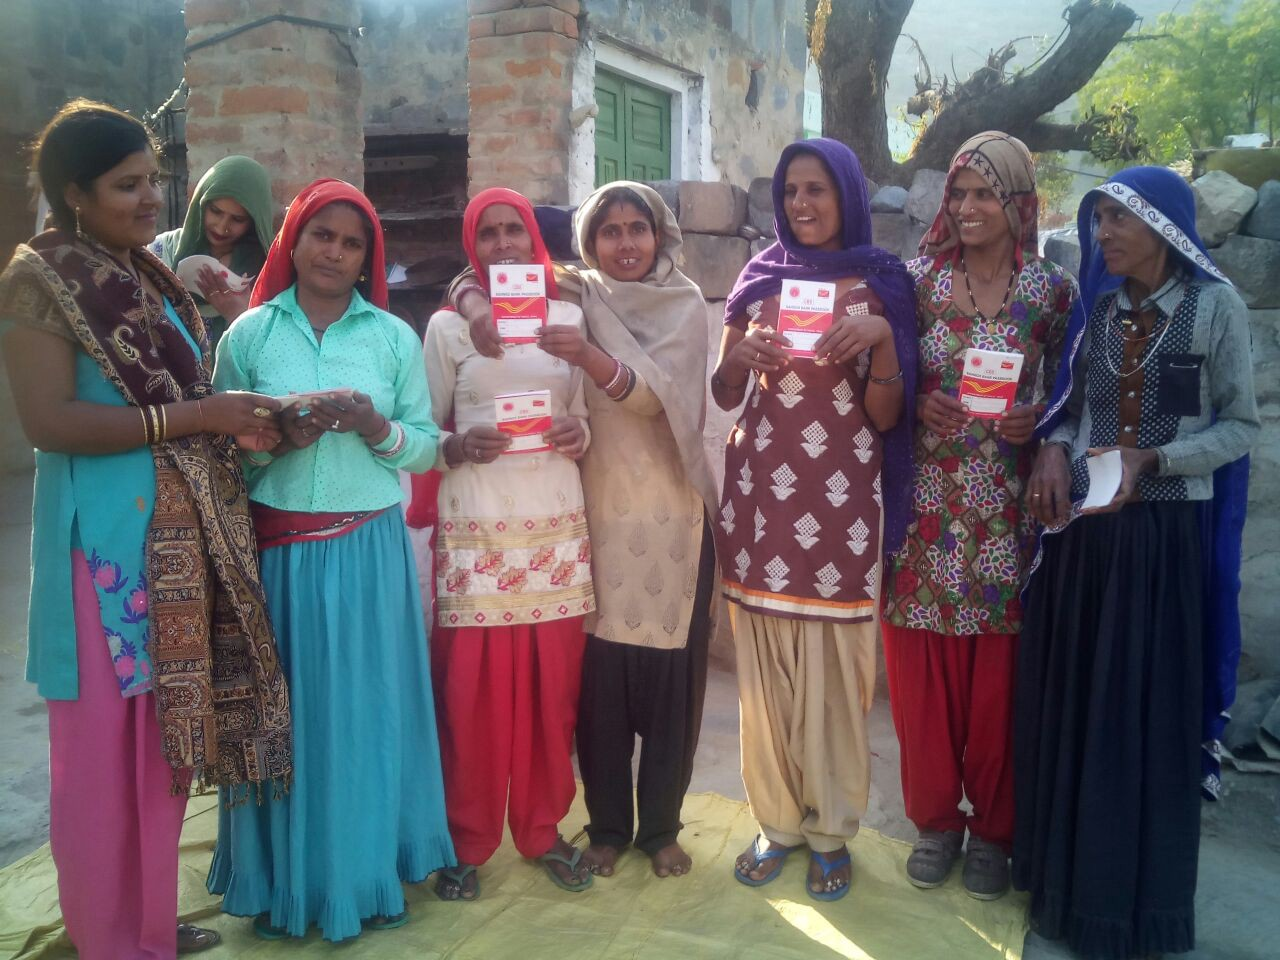 Women availing their rights